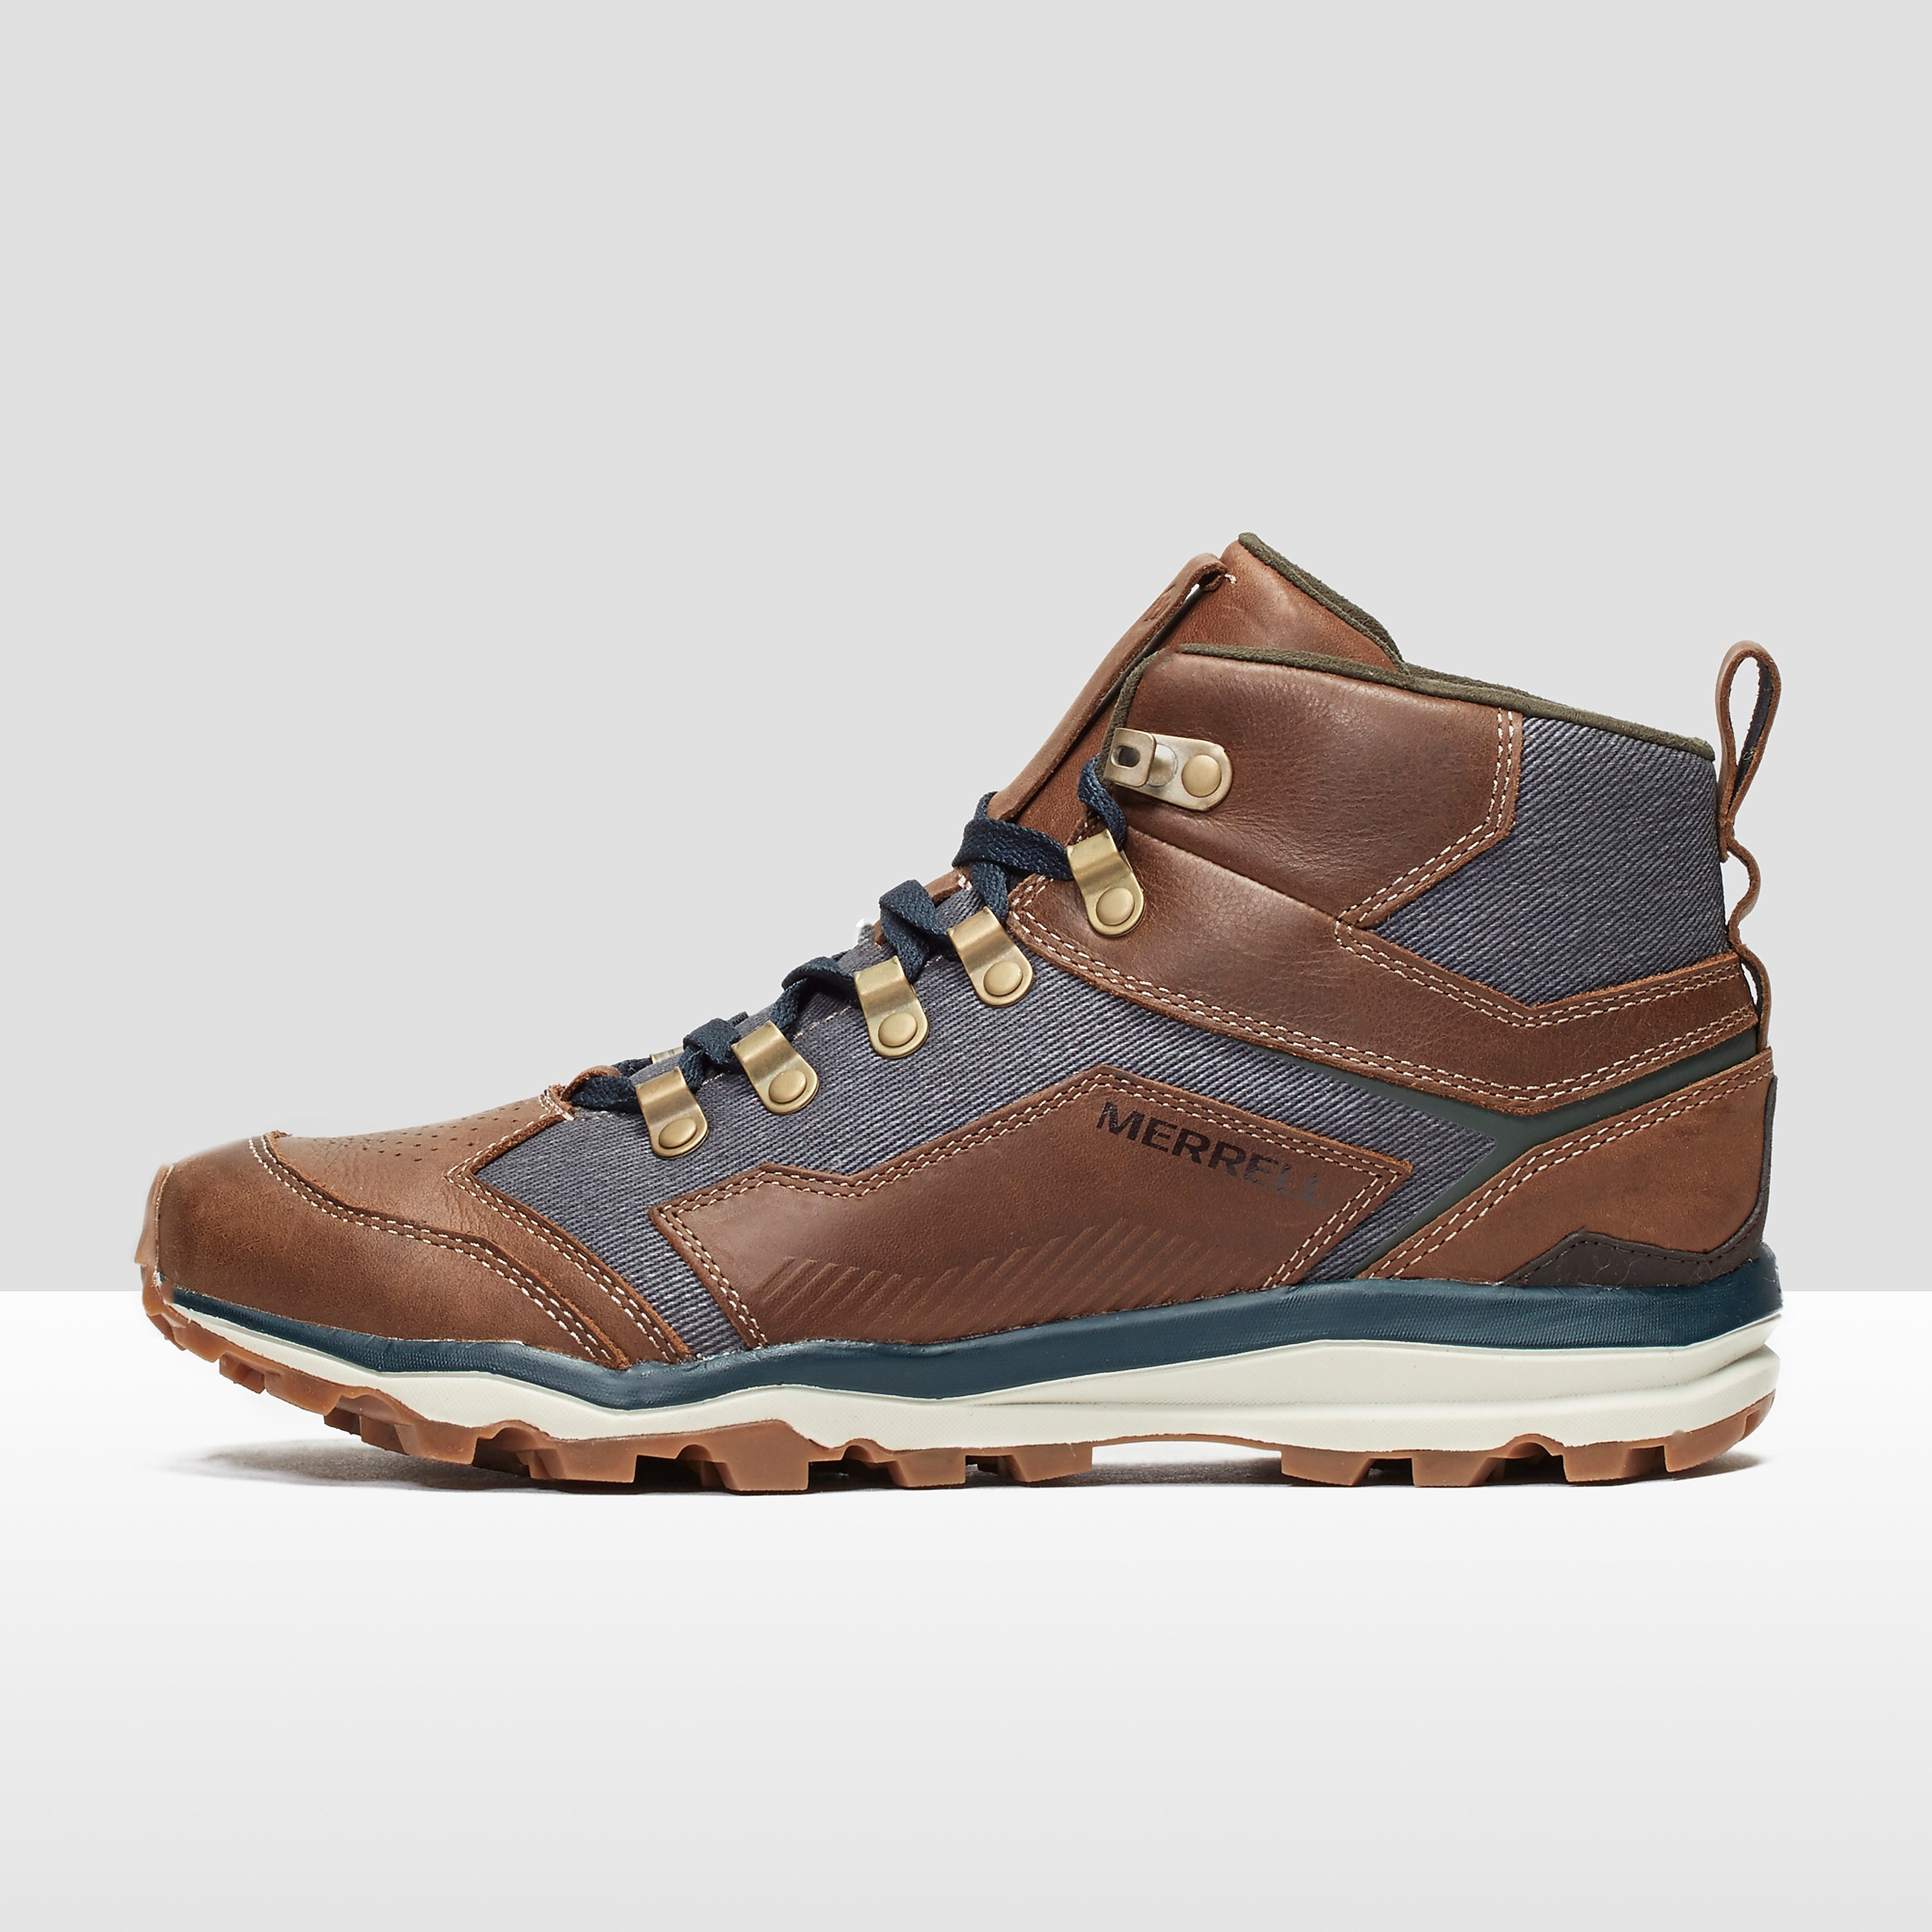 Merrell All Out Crusher Mid Men's Walking Boot